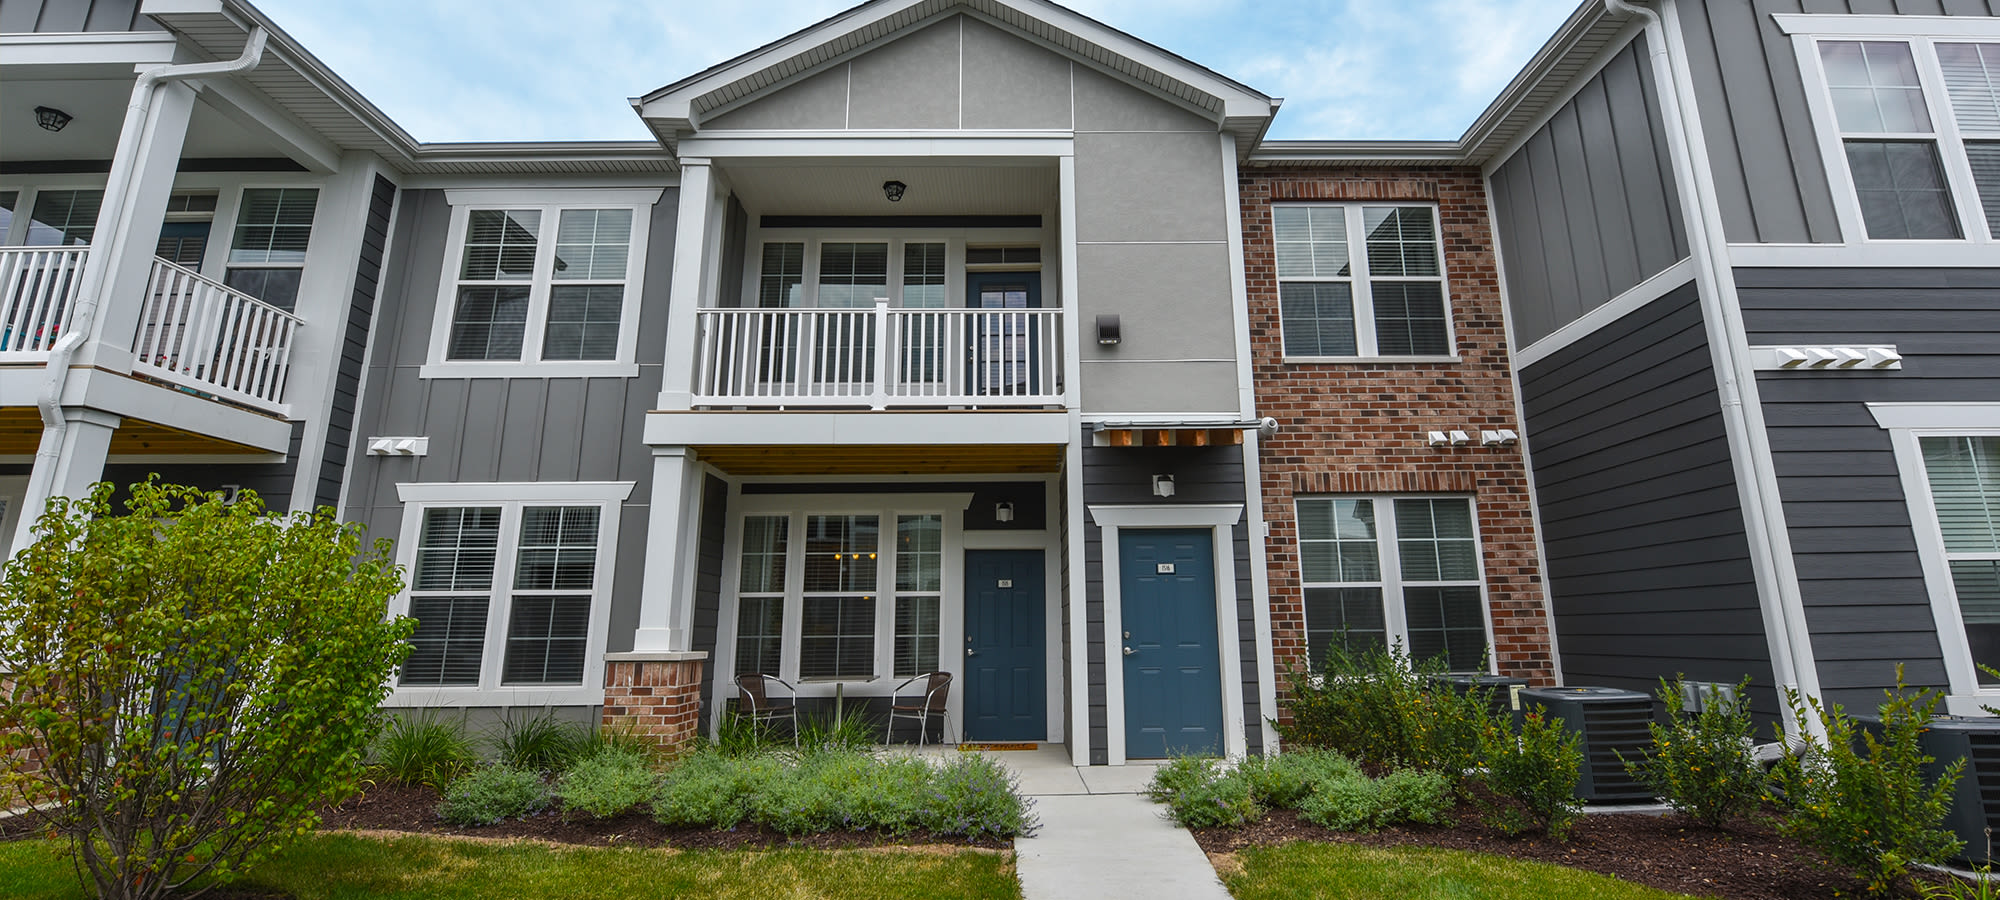 Apartments in South Elgin, IL